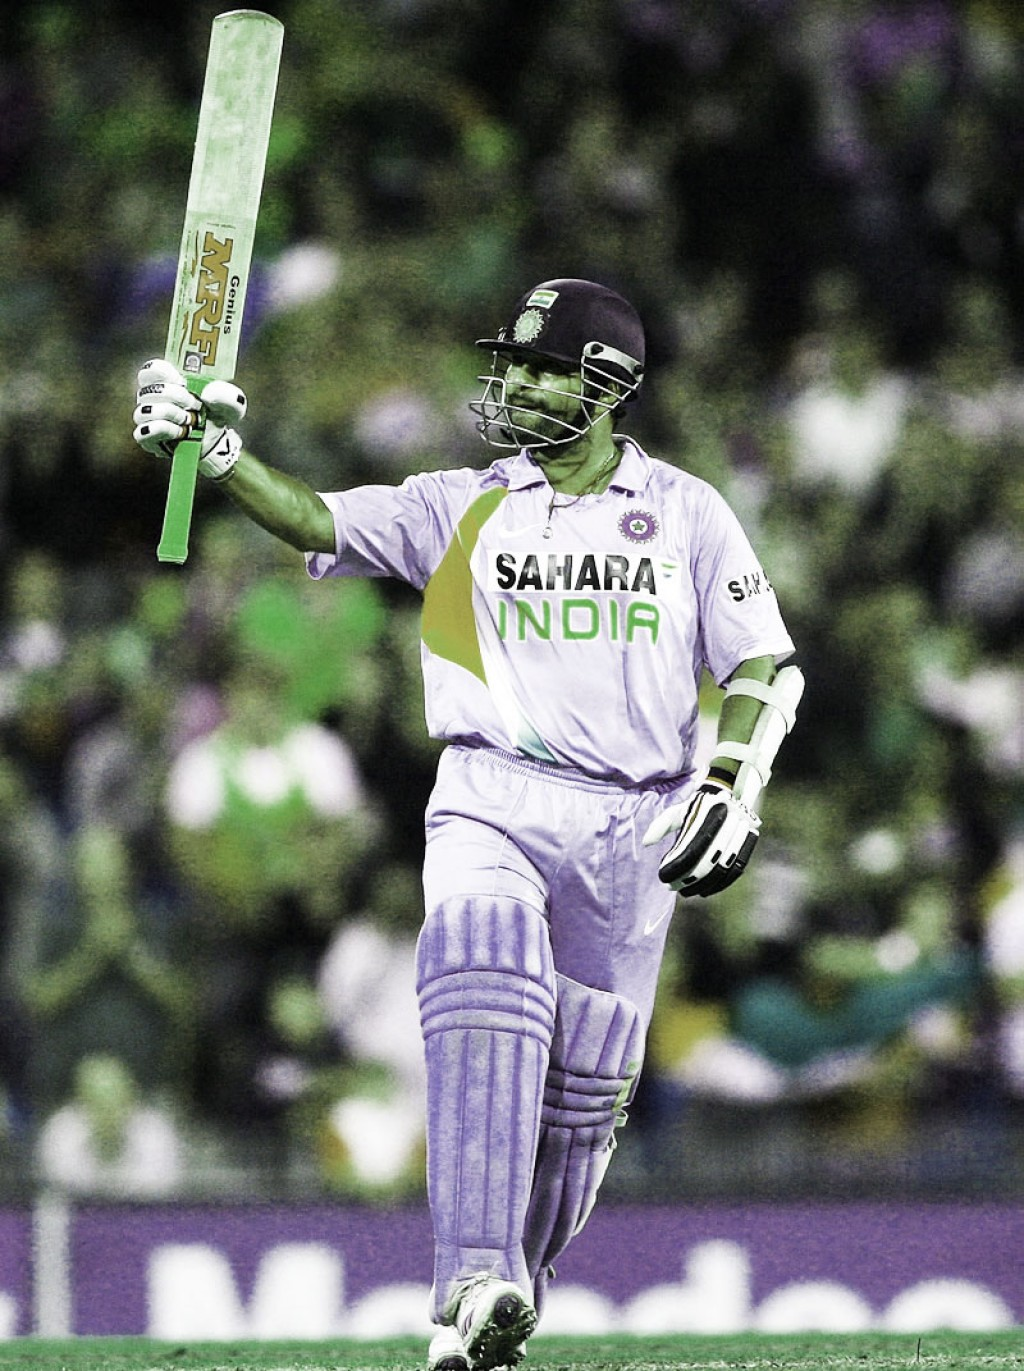 an introduction to the life of sachin tendulkar It is unsurprising that sachin tendulkar's career has produced some of the best cricket writing around his achievements and his conduct alone lend themselves to poetic expression.